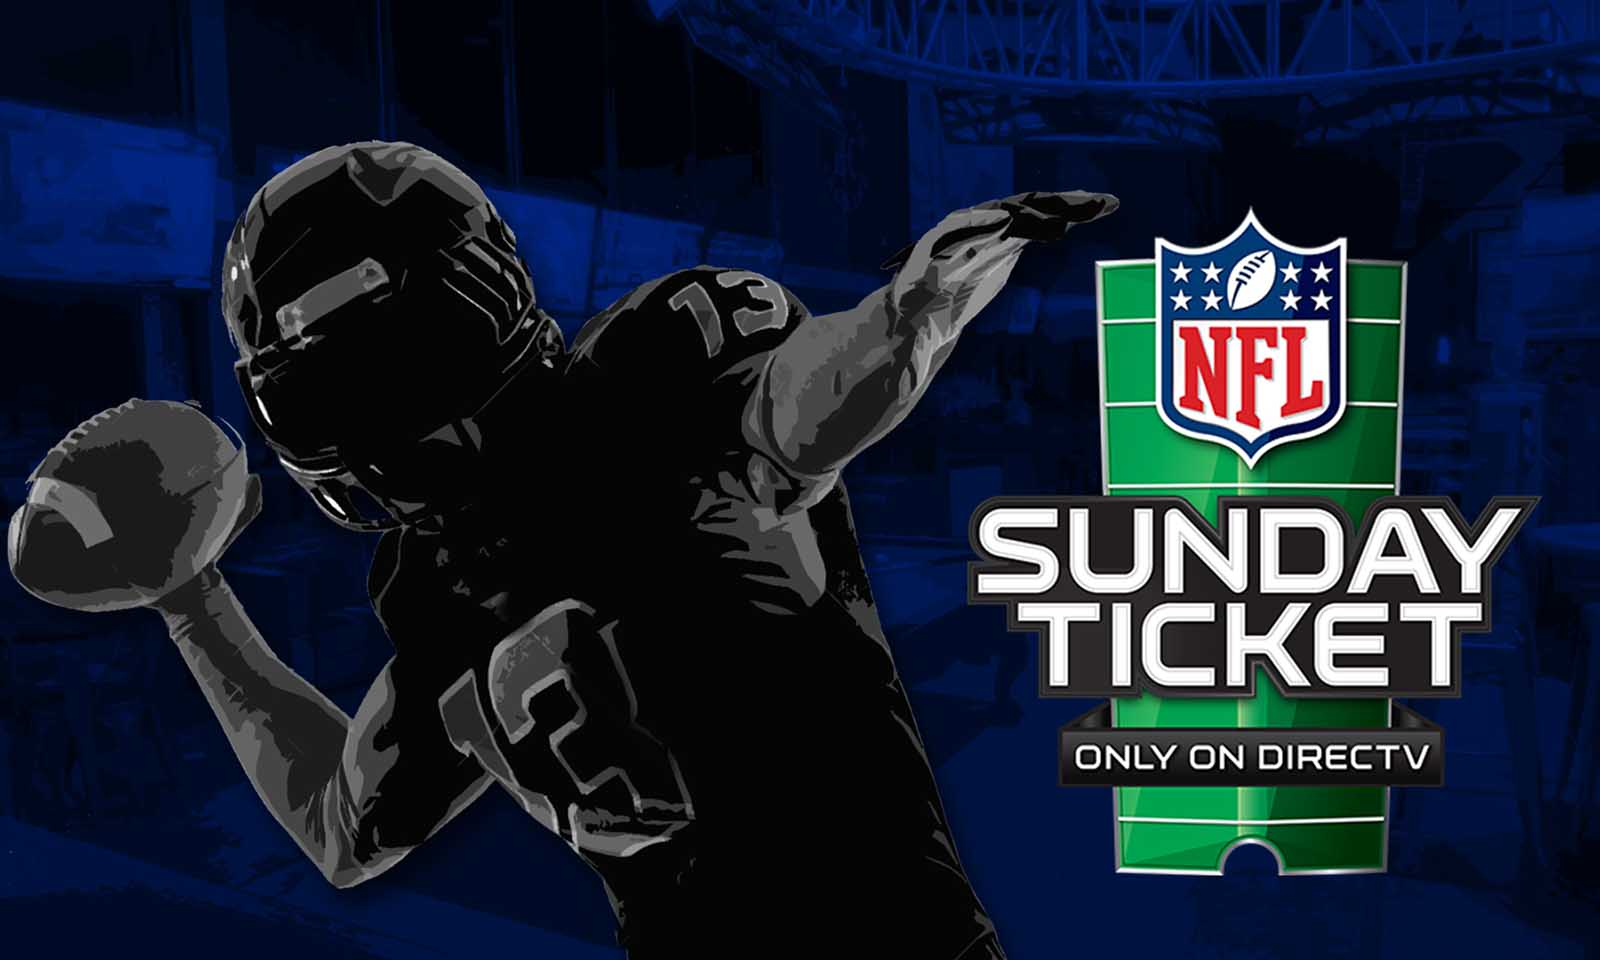 The NFL season is over halfway done, so it's crunch time for many teams. Check out where you can stream this week's NFL games live online for free.